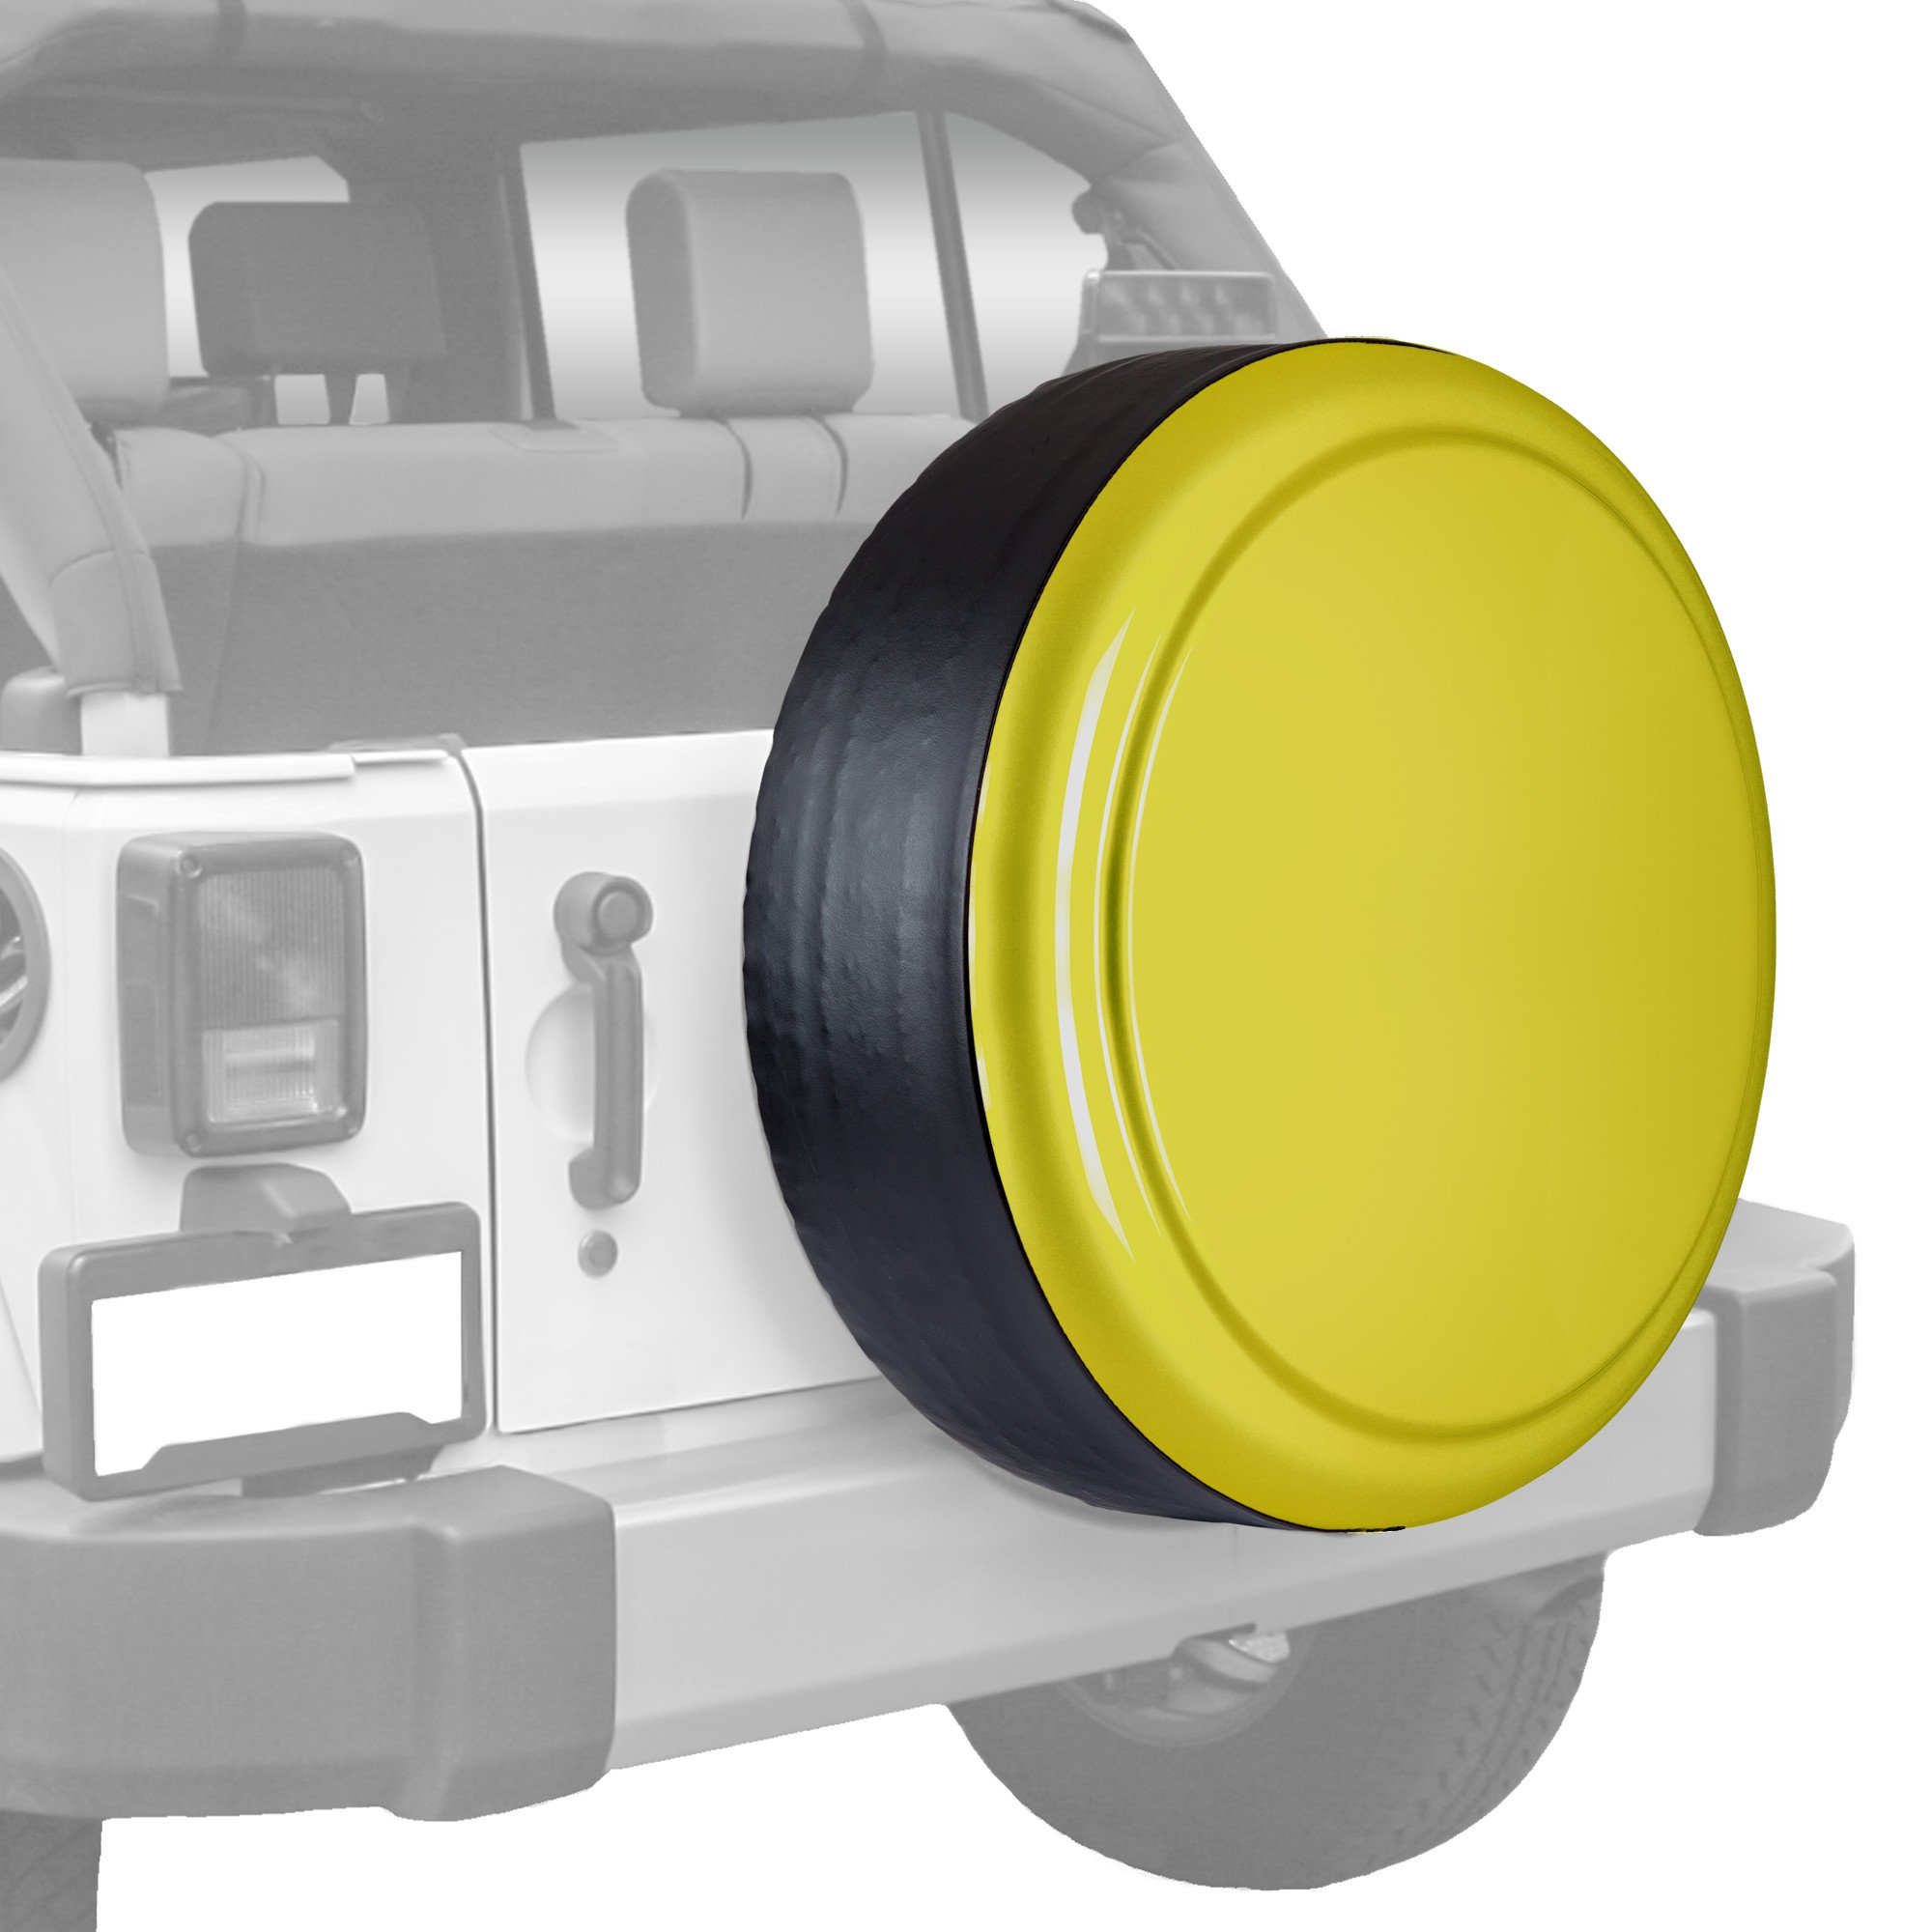 Jeep Wrangler (JK) - 32'' Color Matched Rigid Tire Cover (Plastic Face & Vinyl Band) - Acid Yellow by Boomerang (Image #1)